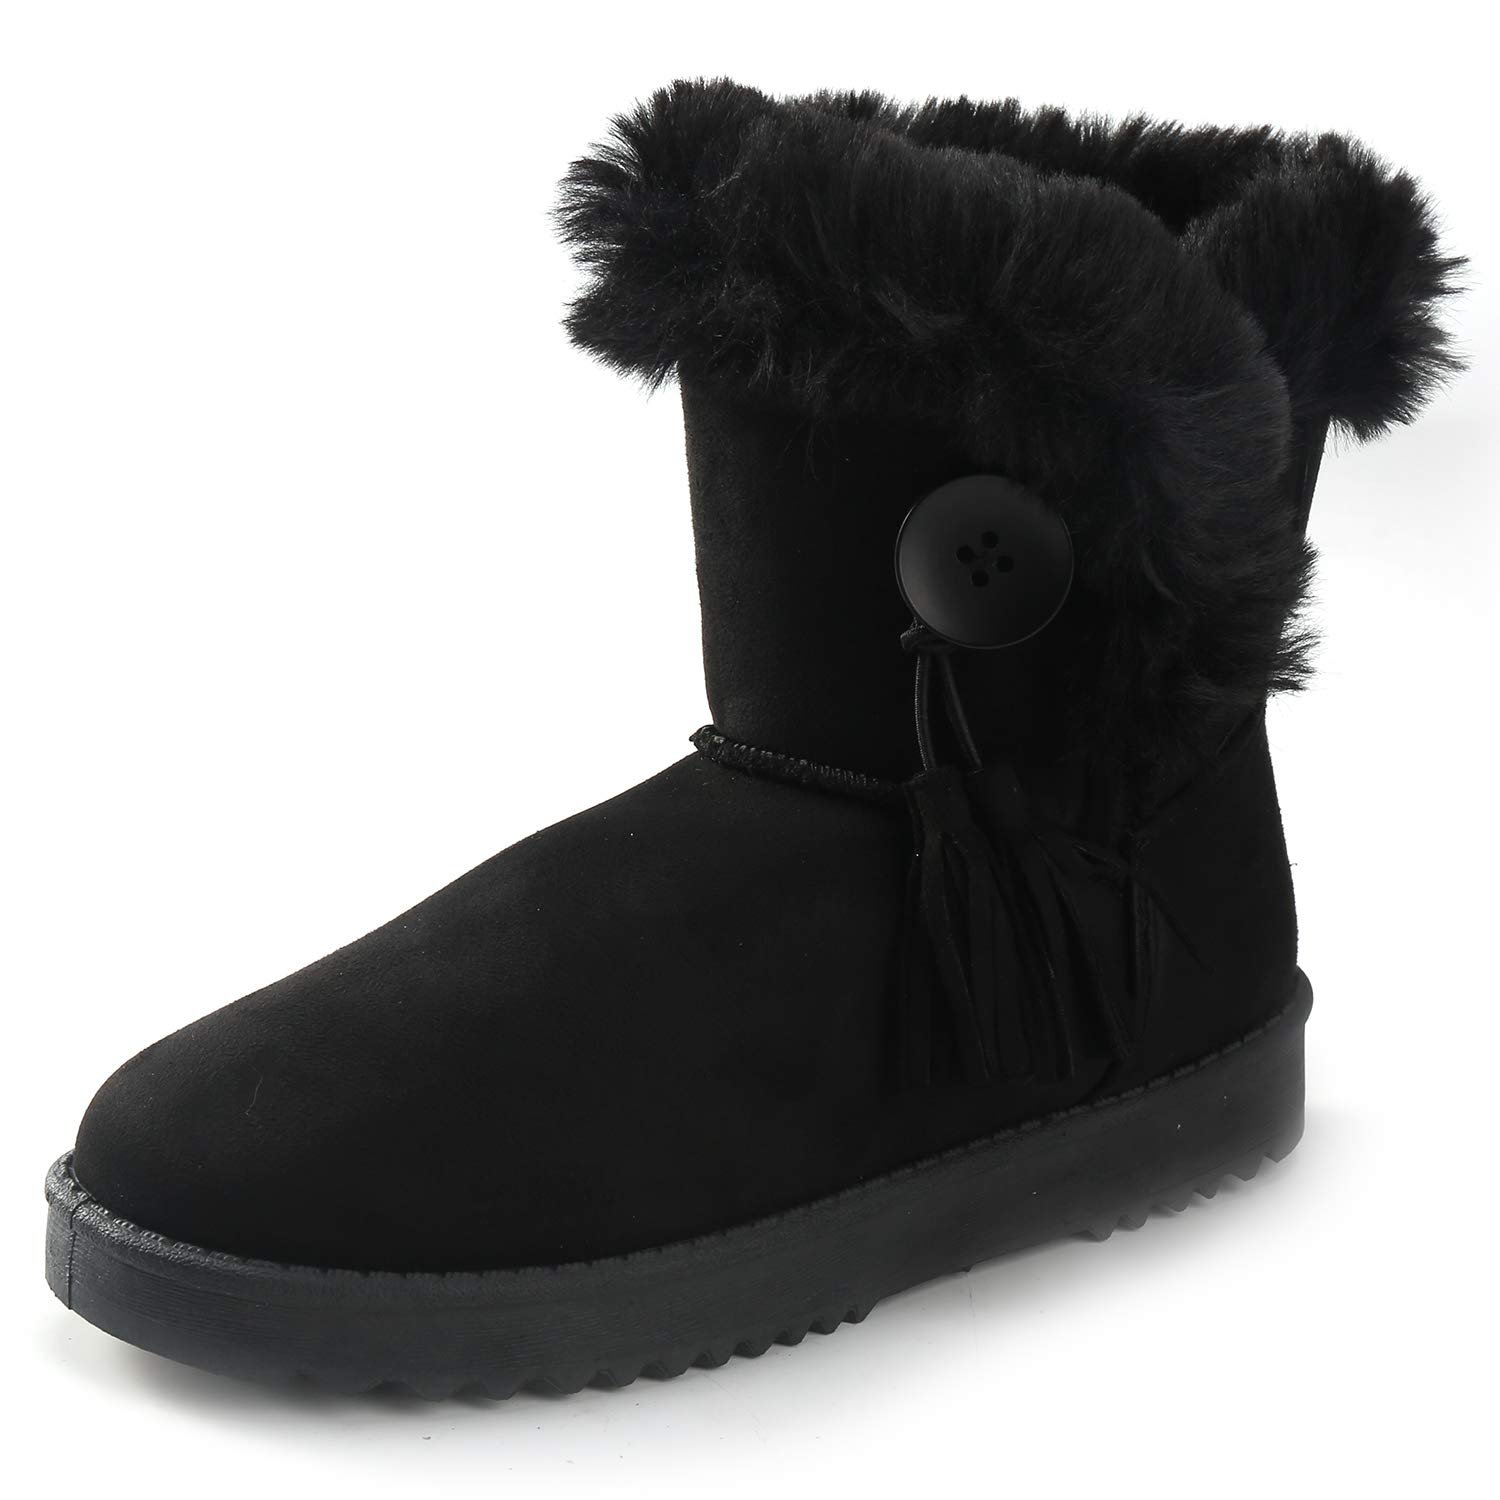 Alexis Leroy Women's Button Style Mid-Calf Warm Fur Lined Winter Flat Snow Boots